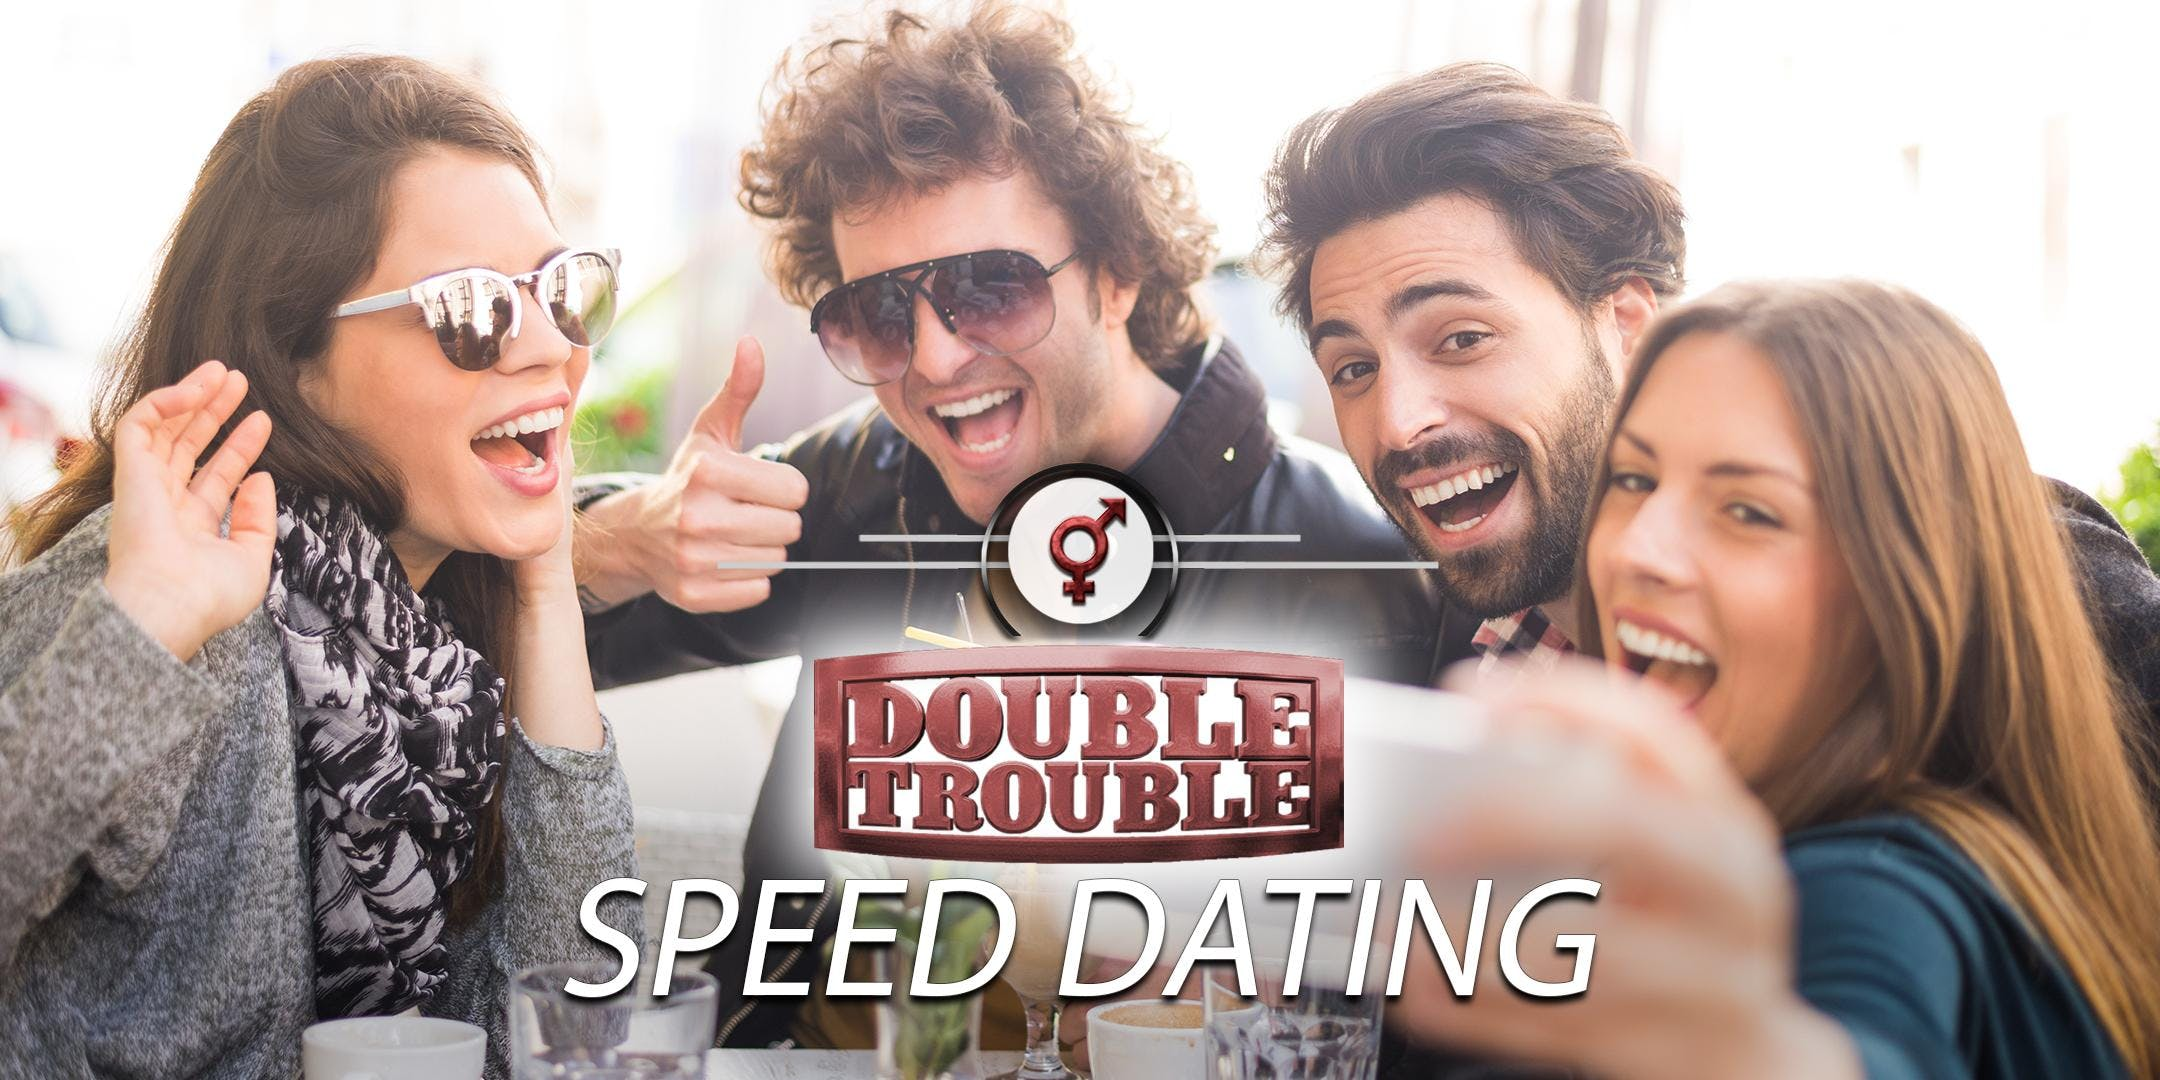 related literature about online dating